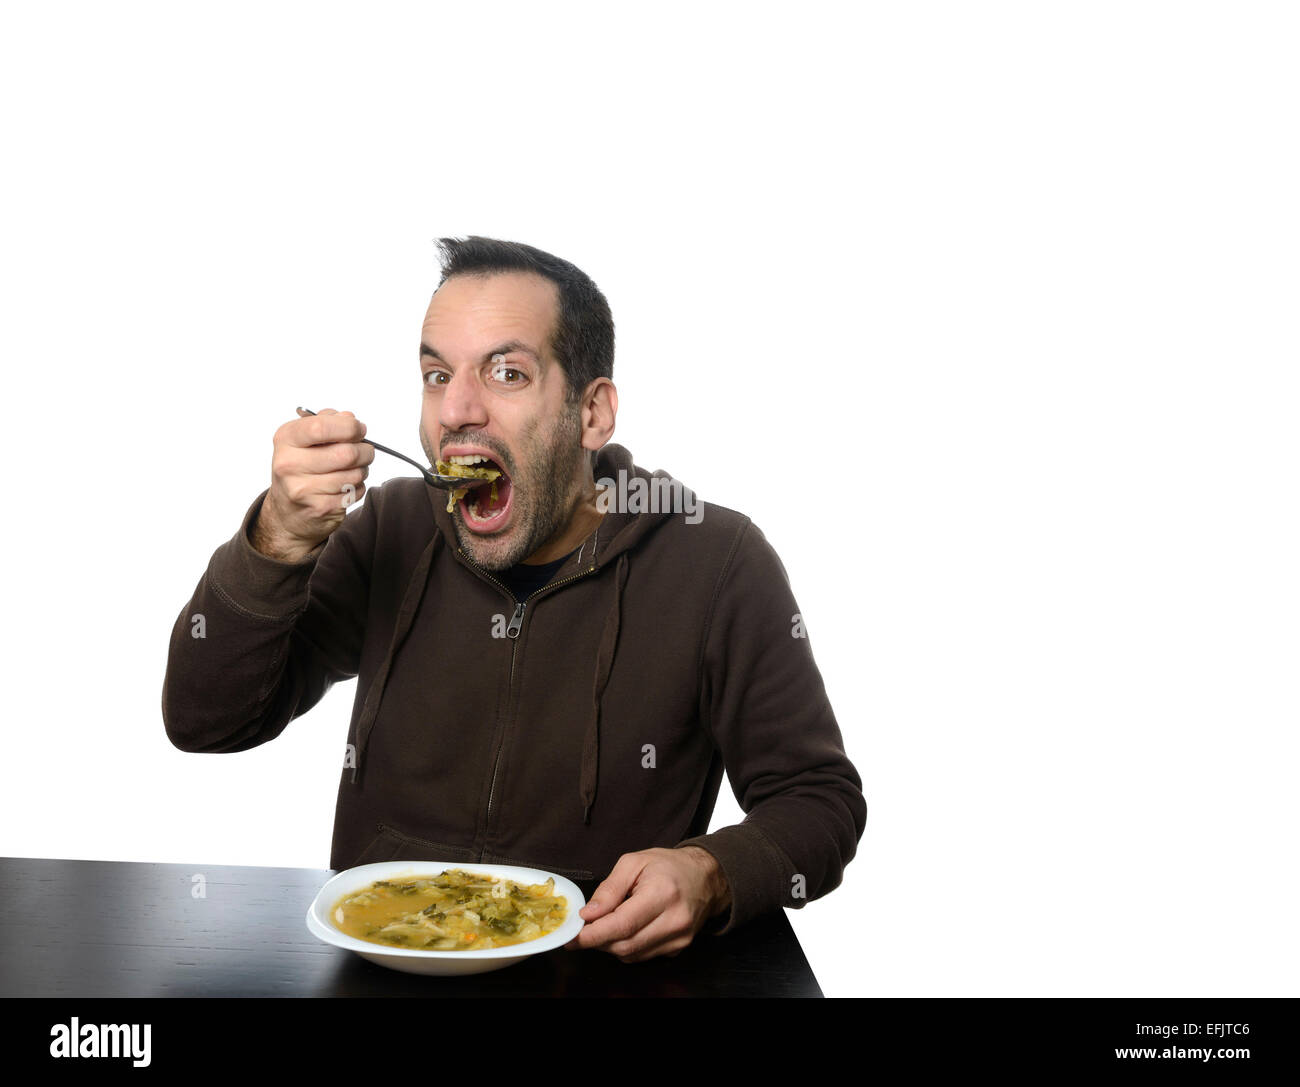 Young man eating vegetable soup with his mouth wide open - Stock Image